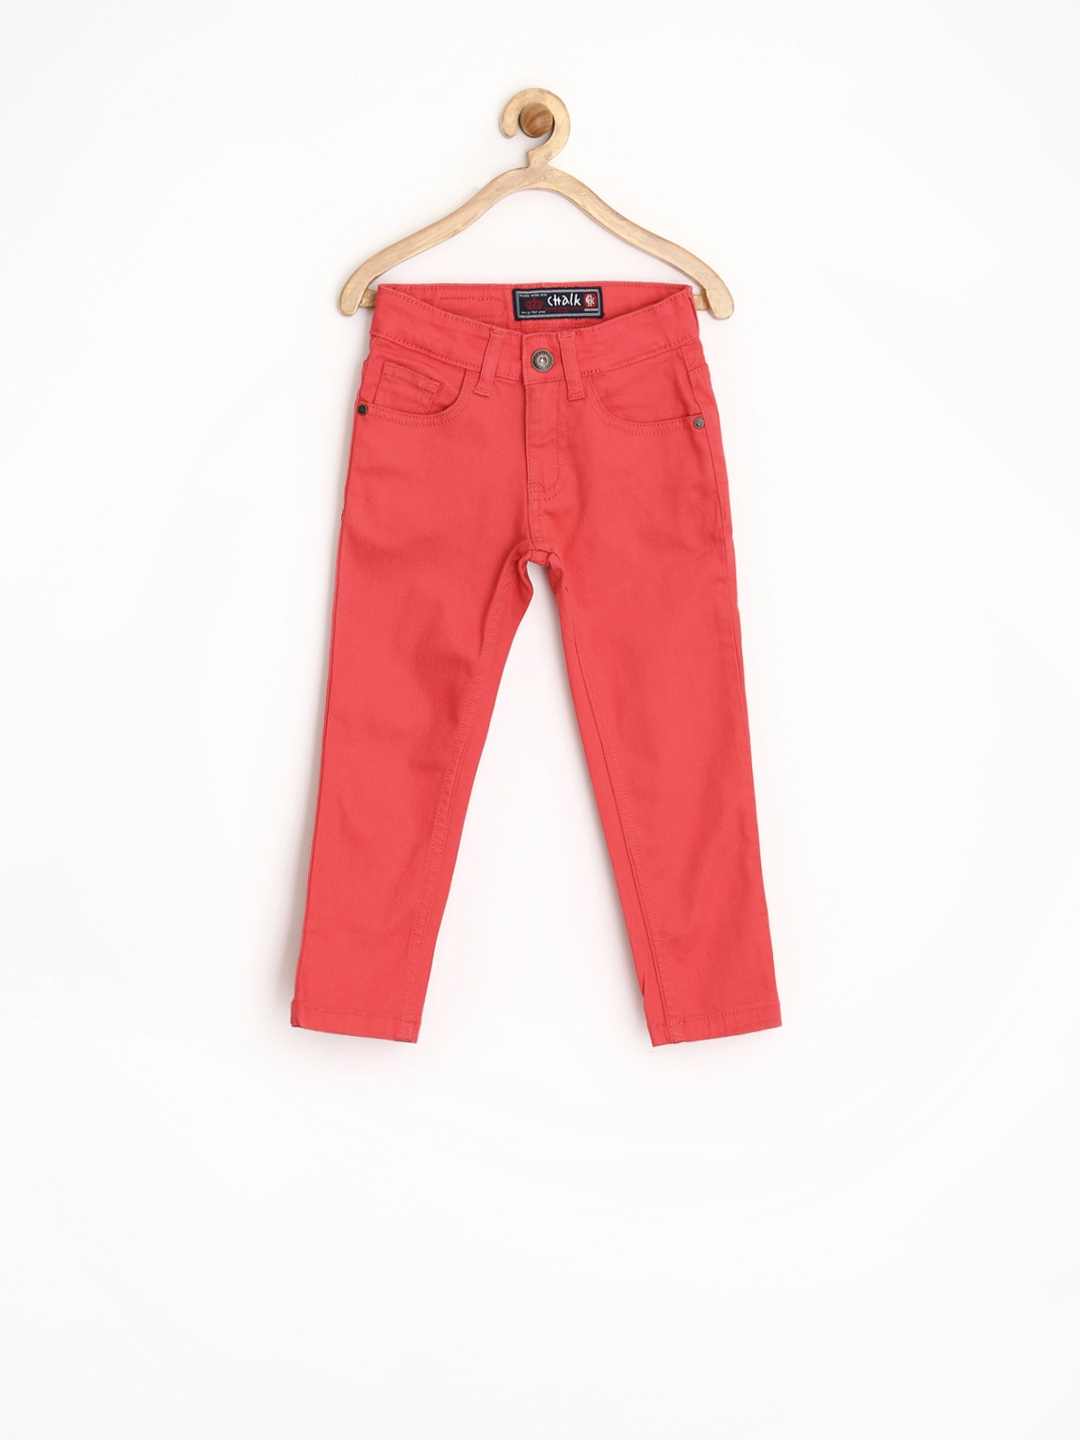 Buy CHALK By Pantaloons Girls Coral Red Jeans - Jeans for Girls ...